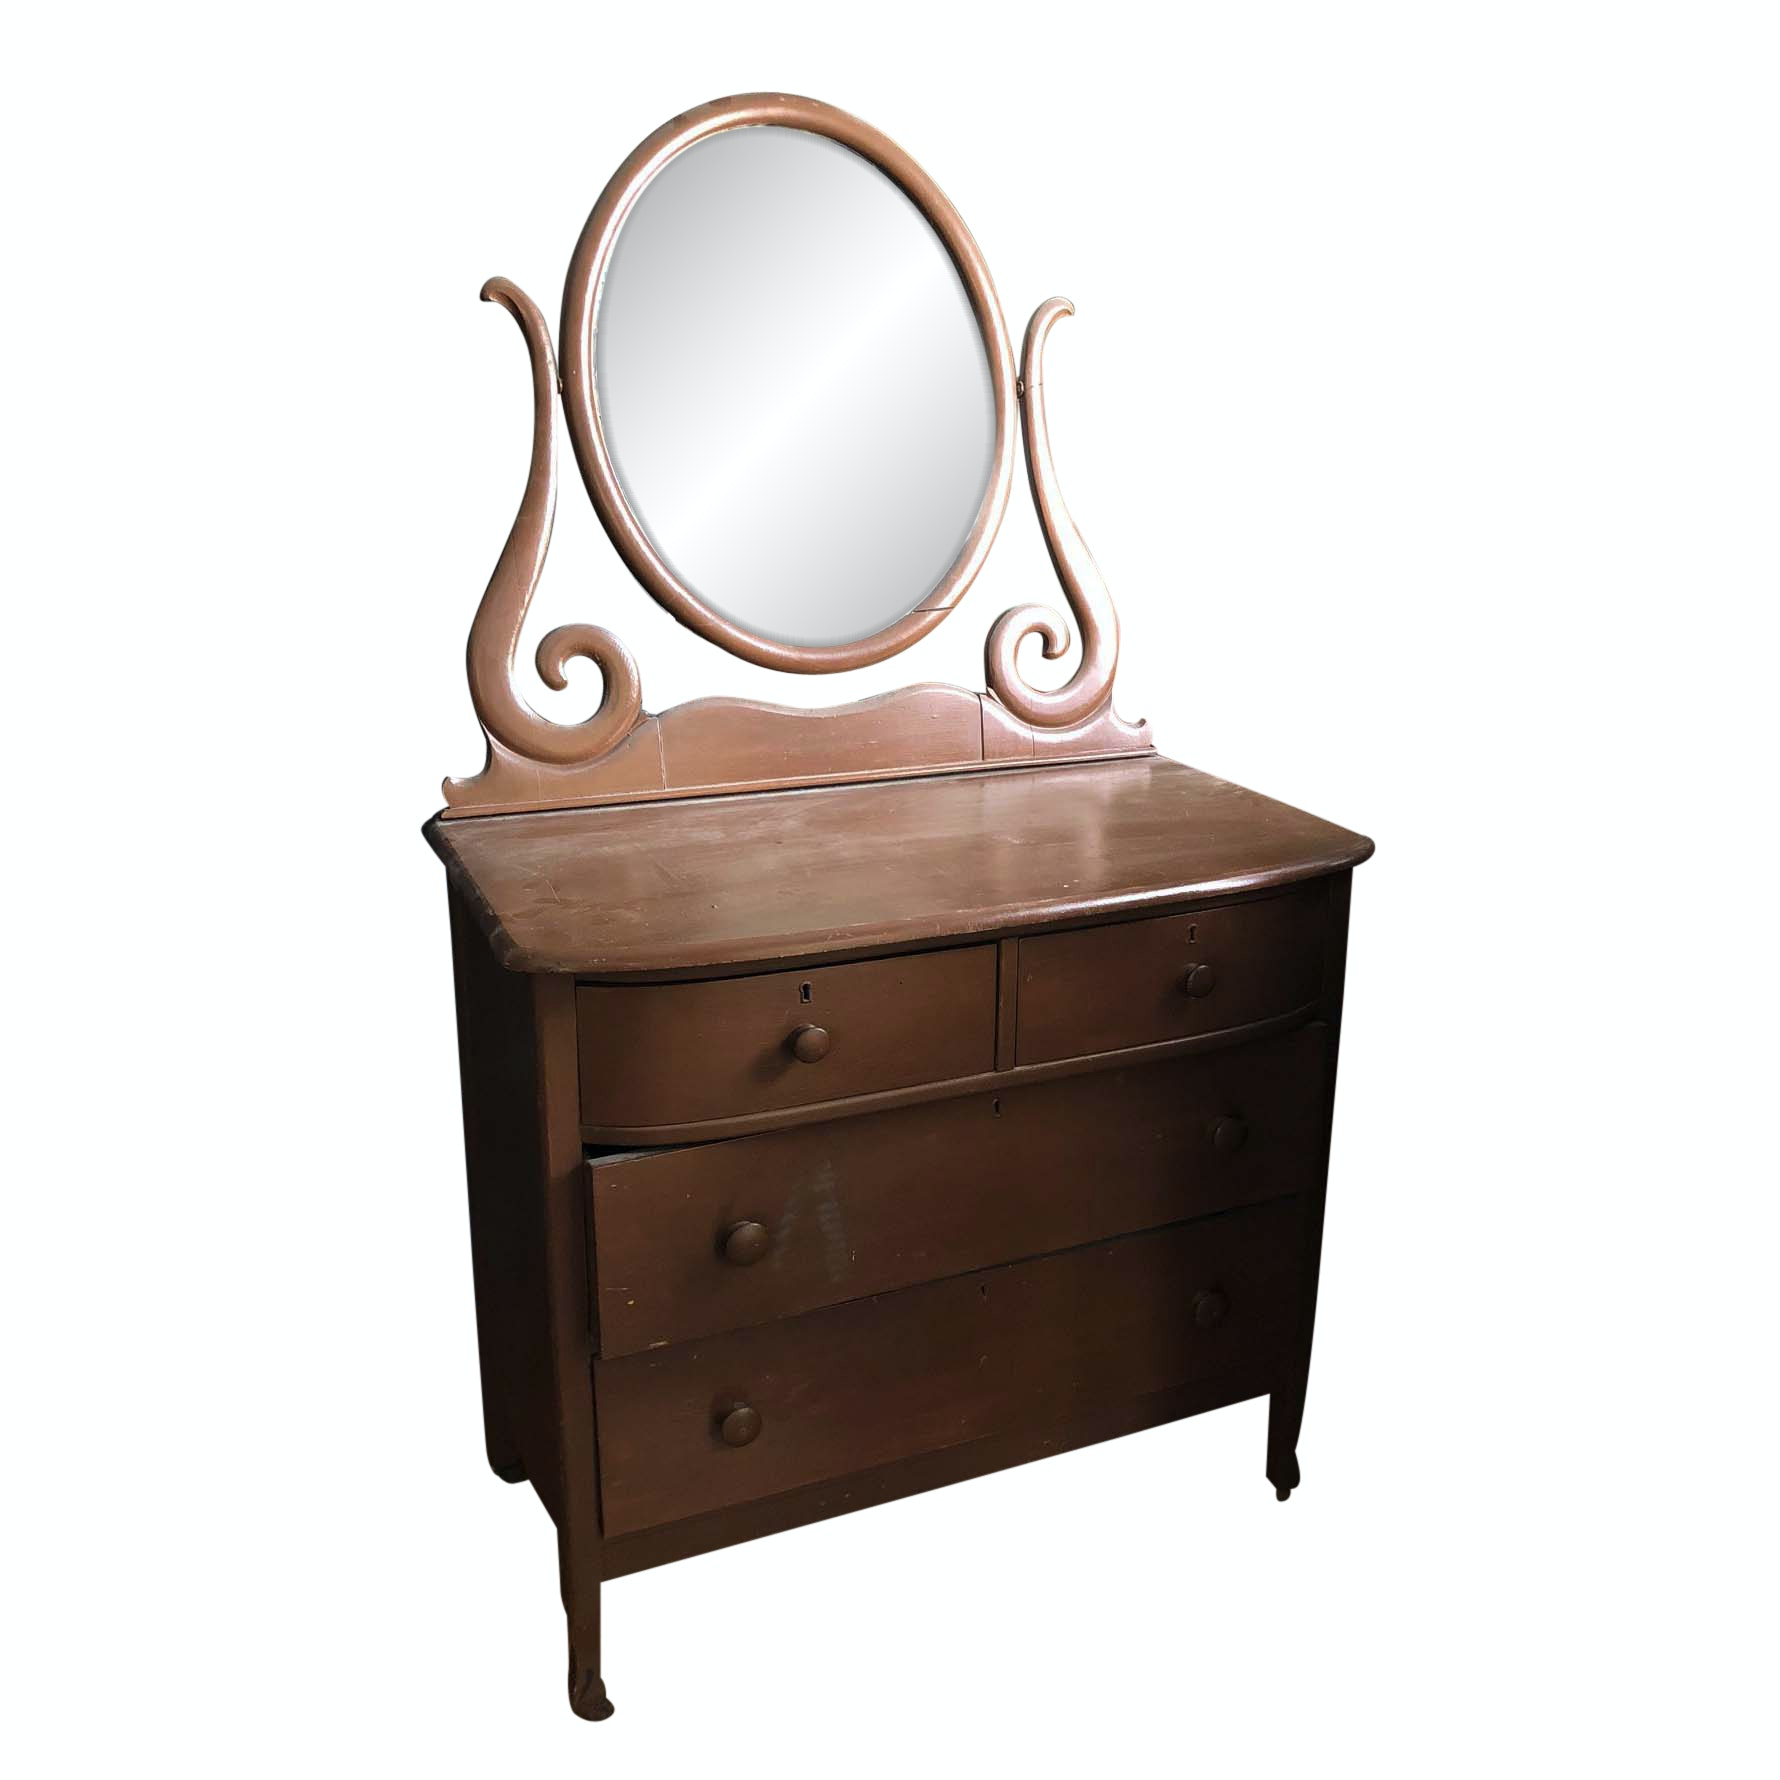 Vintage Painted Chest of Drawers and Mirror